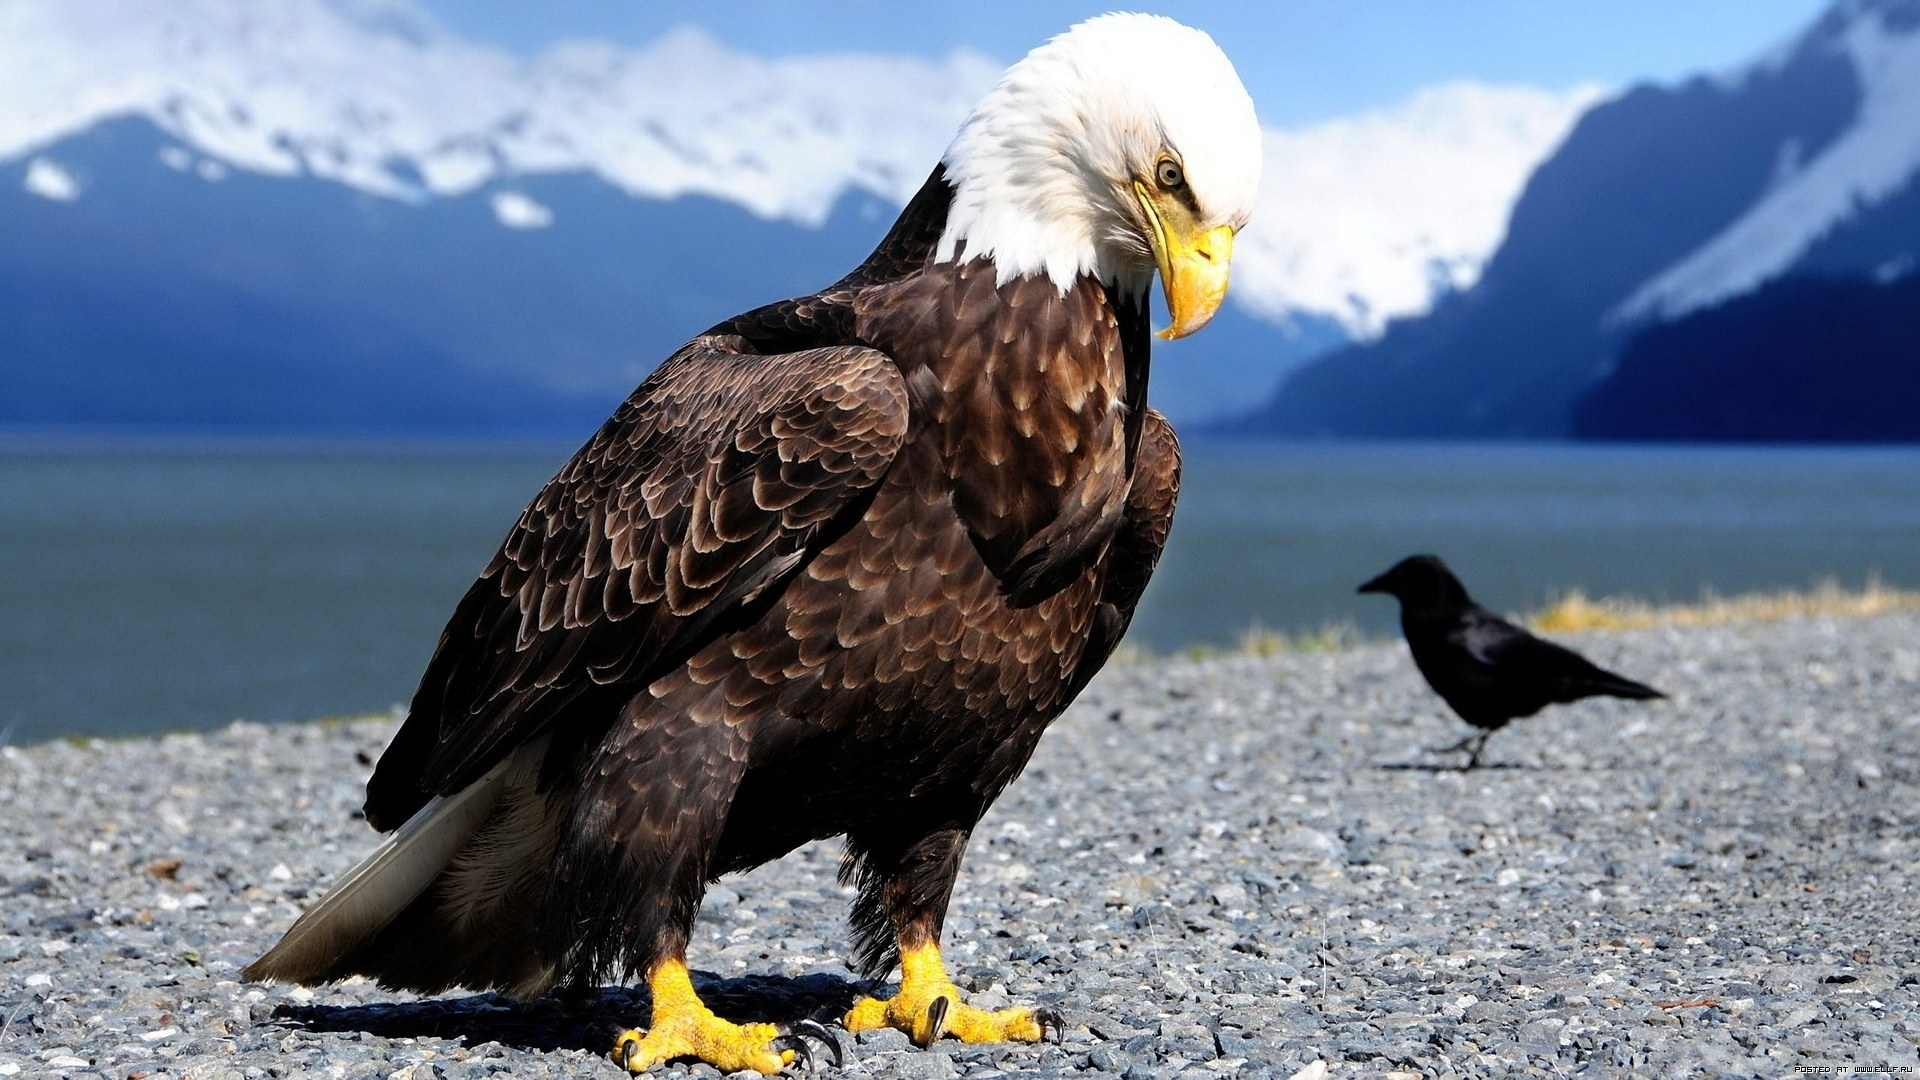 50277 download wallpaper Animals, Birds, Eagles screensavers and pictures for free